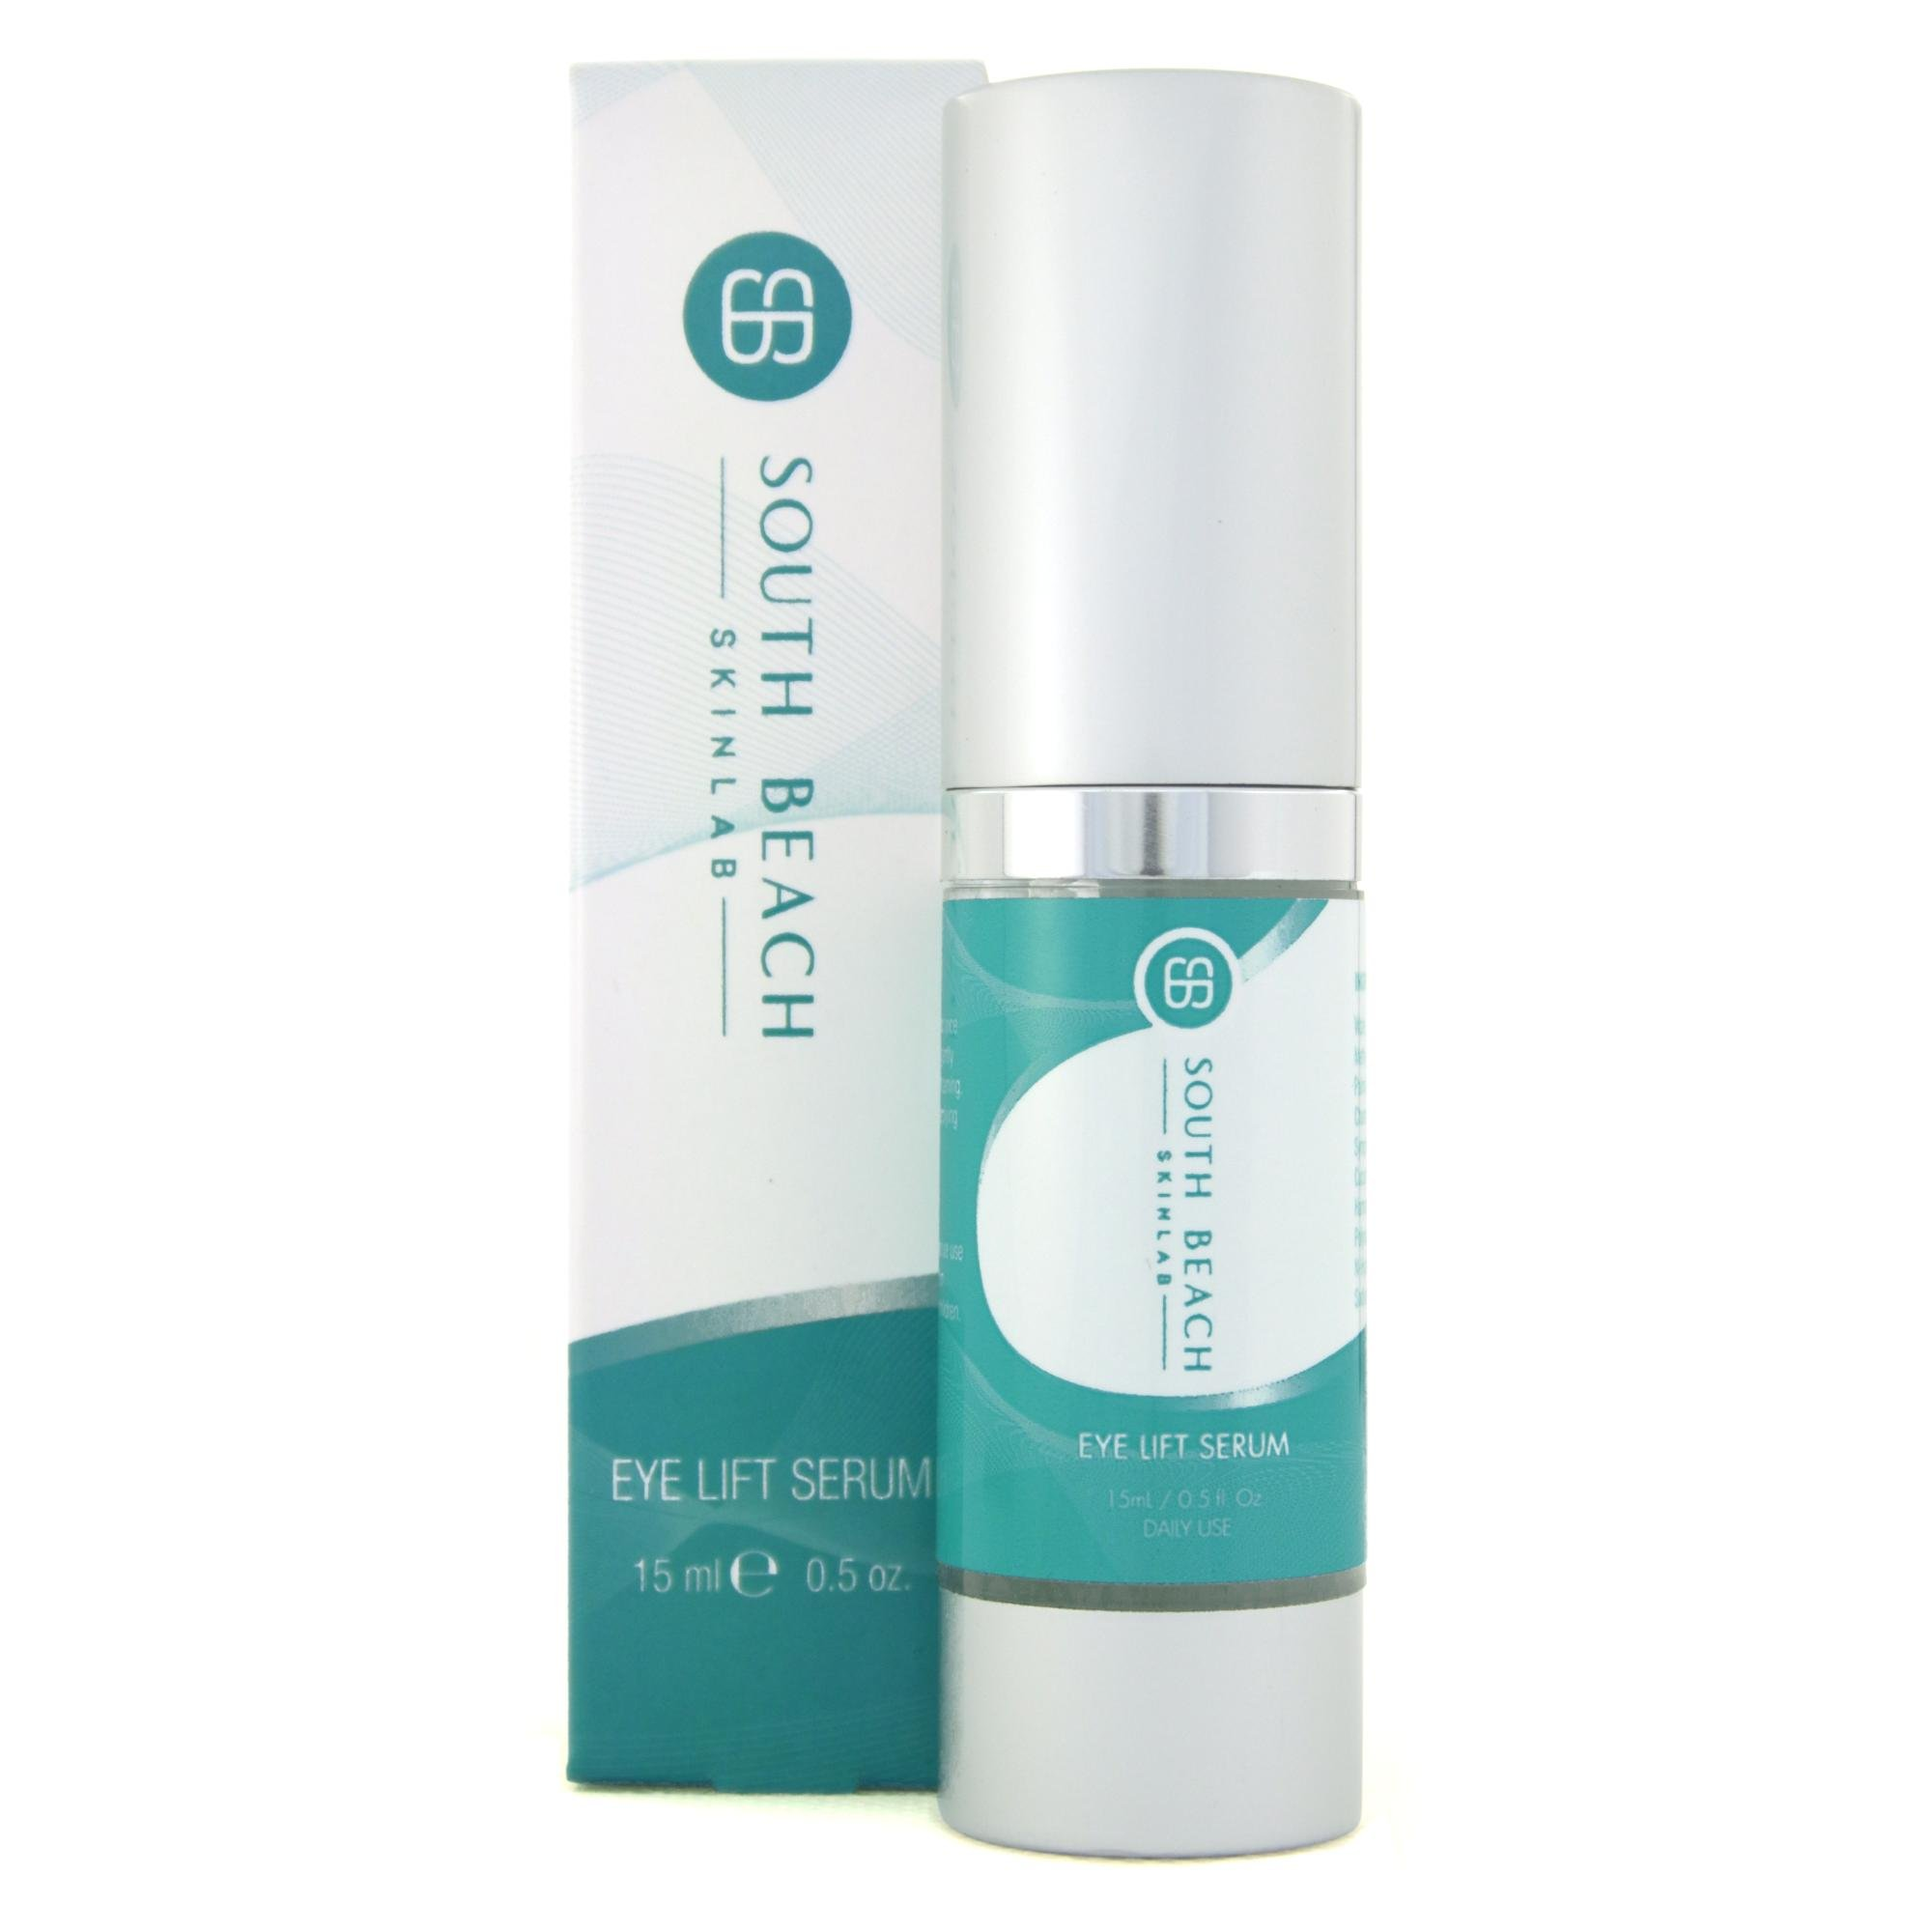 South Beach Skin Lab Eye Lift Serum - Peptide Formula for Under Eye Treatment of Dark Circles, Puffiness, Wrinkles and Bags.